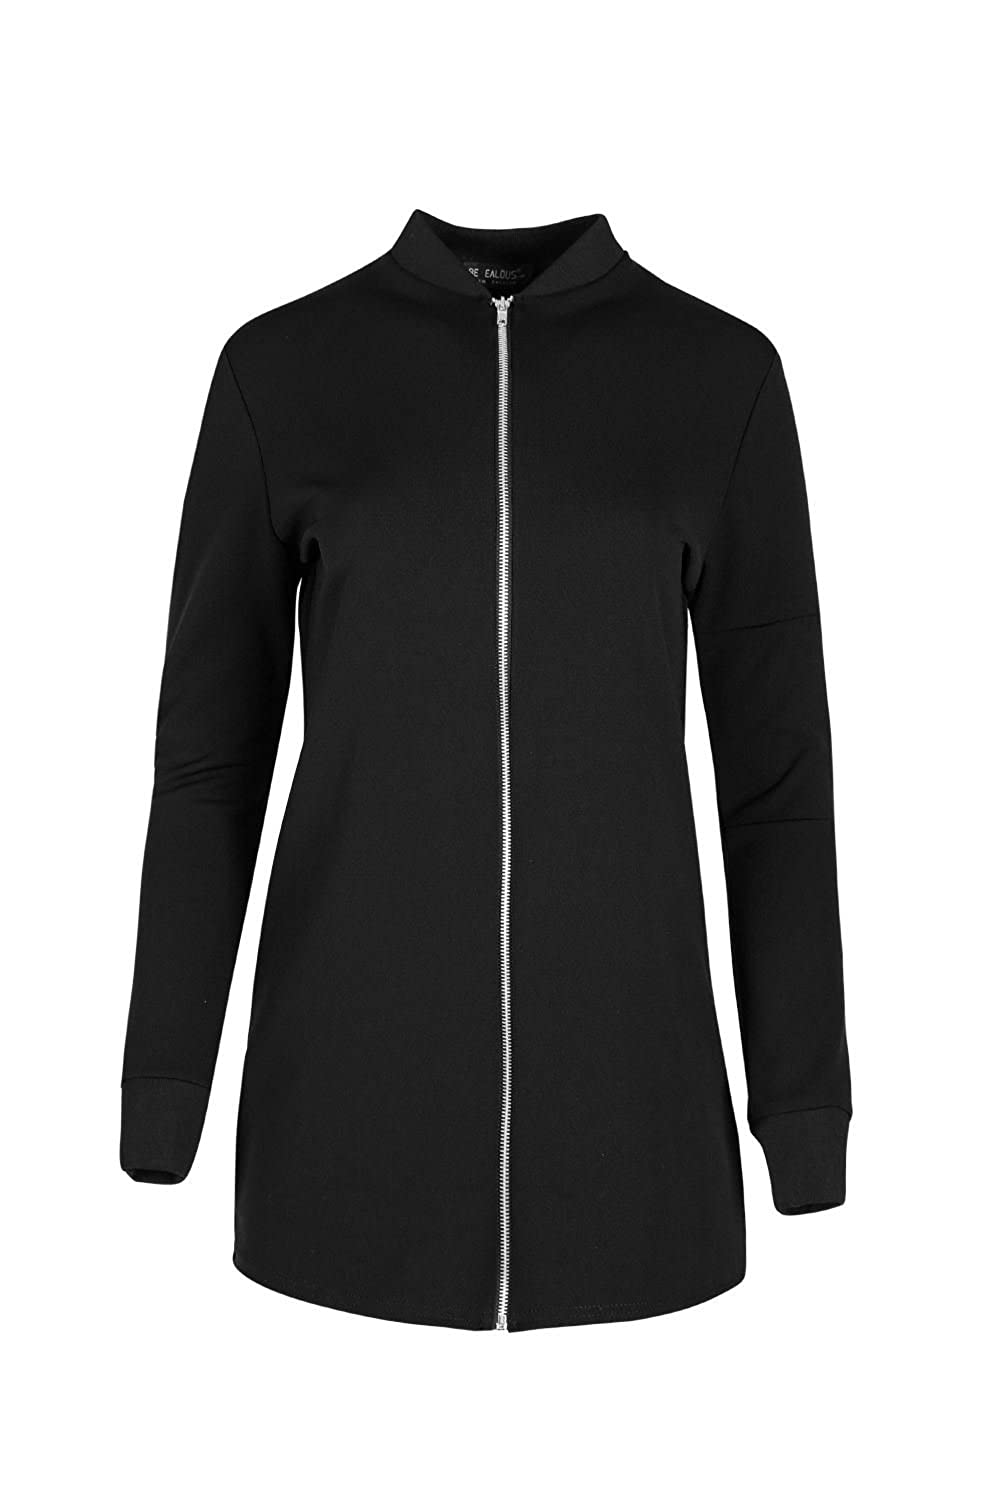 Oops Outlet Womens Zip Up Contrast Collared Longline Scuba Bomber Jacket Coat